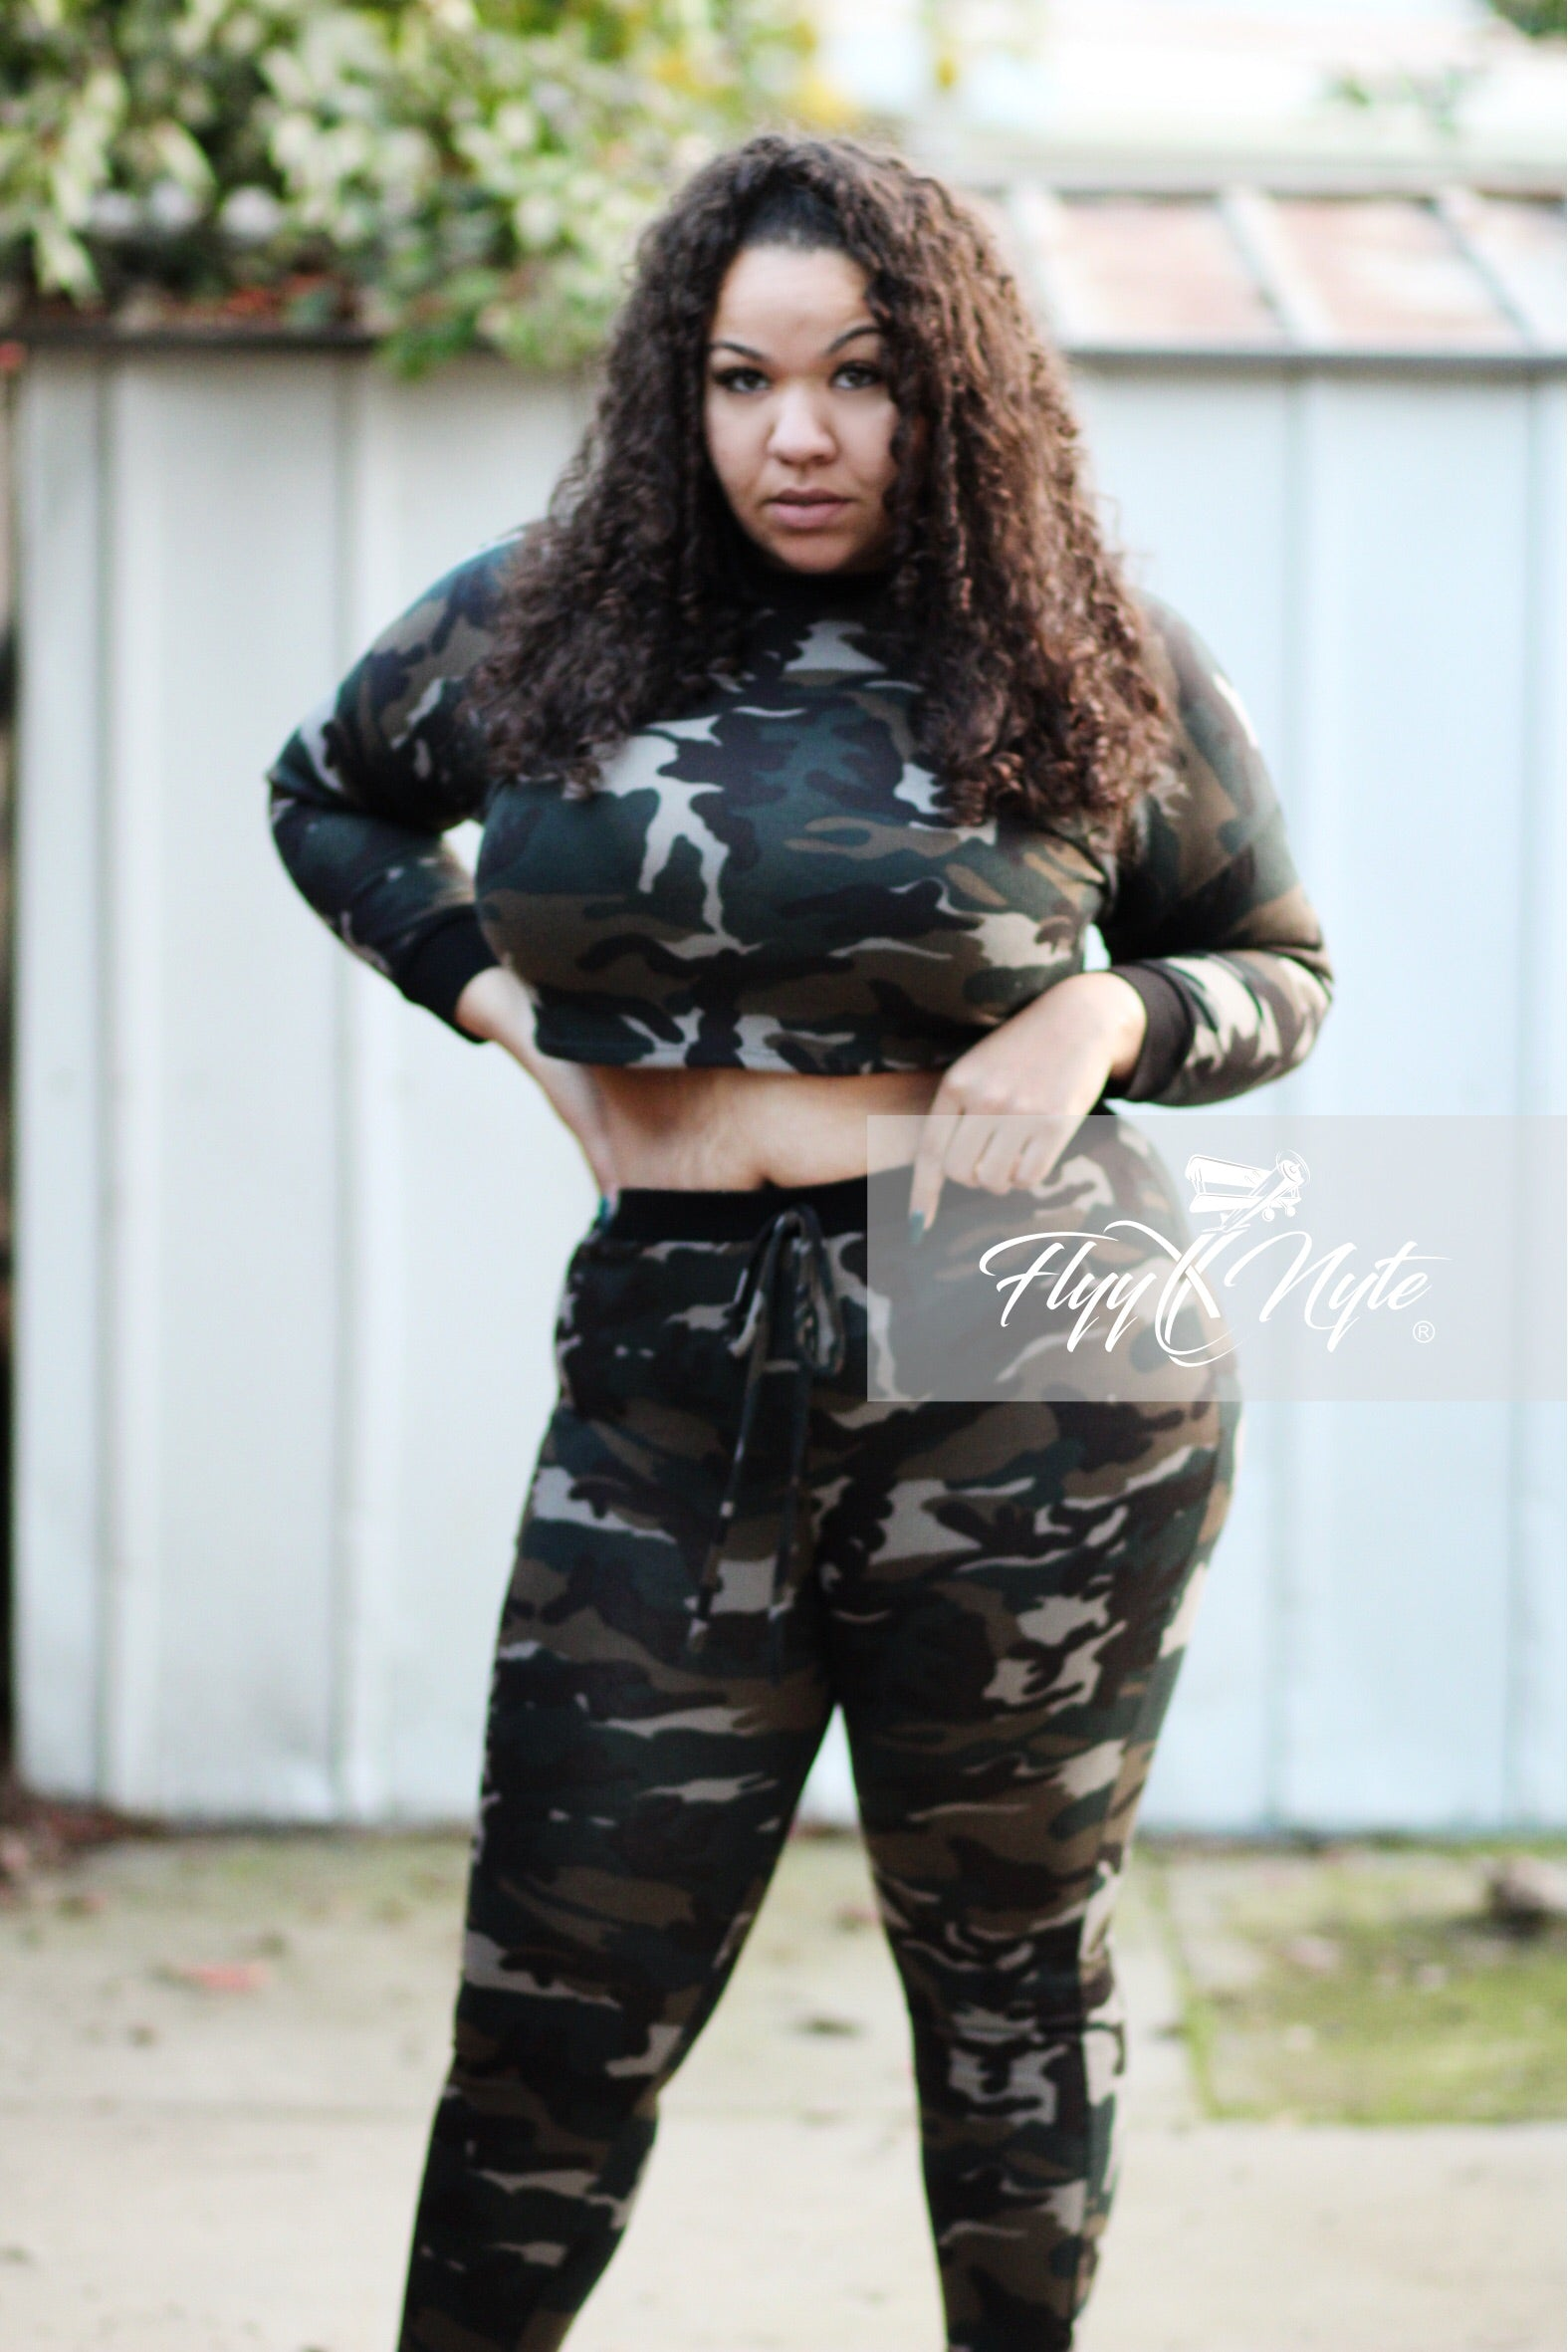 Final Sale Plus Size Long Sleeve Crop Top and 3/4 Leggings in Green Tan and Black Camo Print